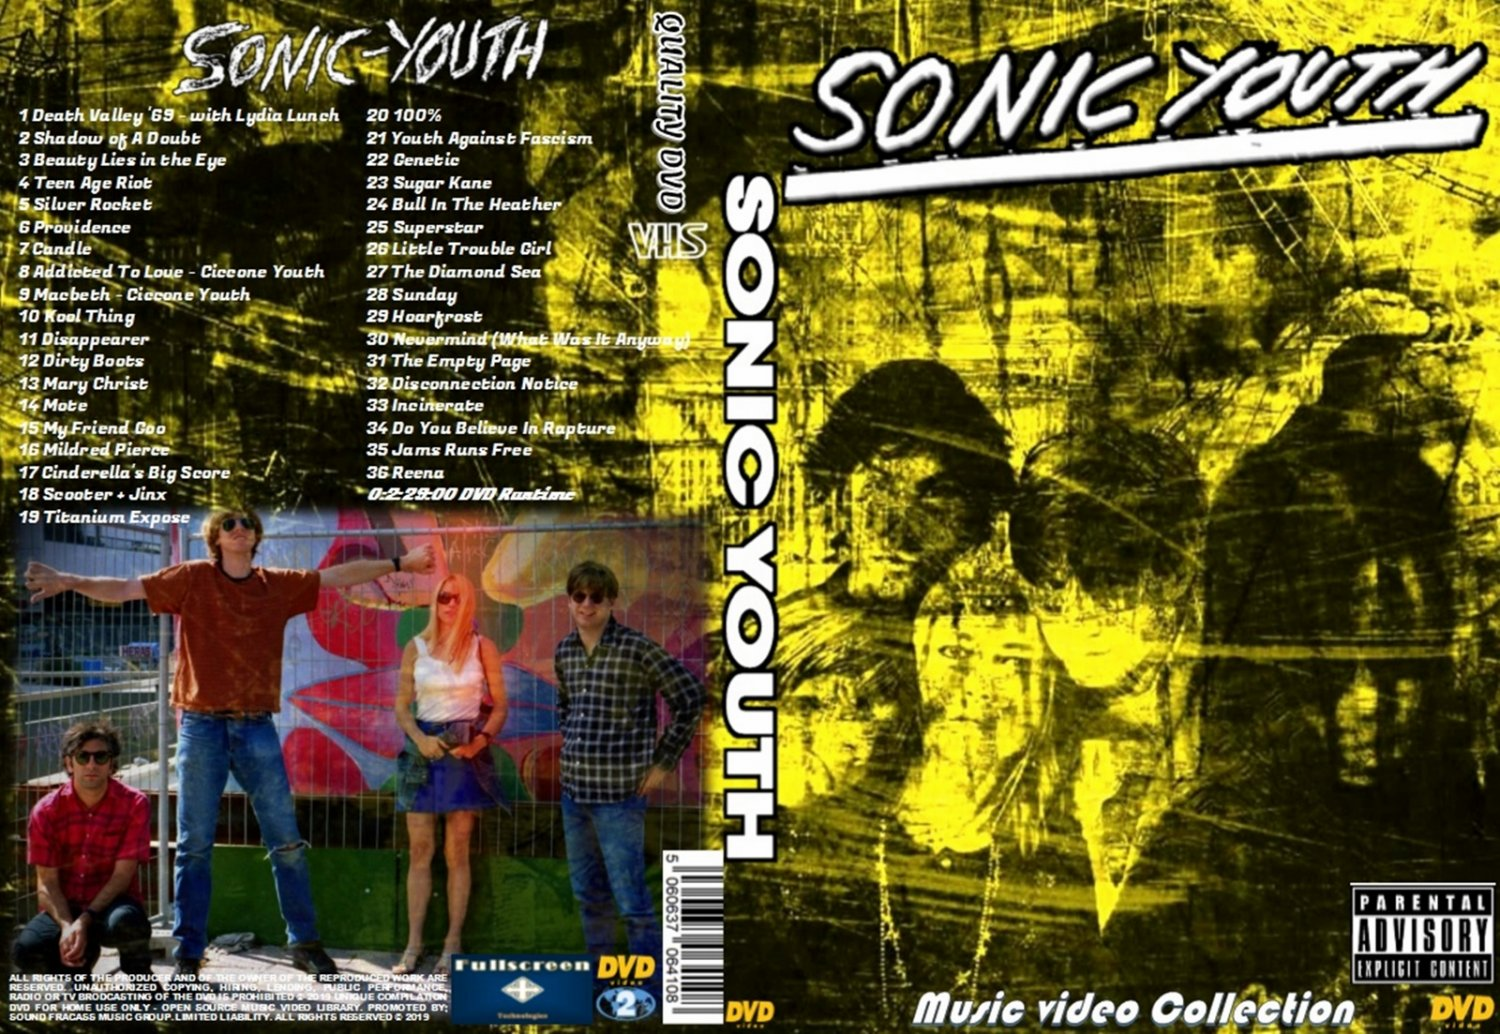 Sonic Youth Music Video DVD